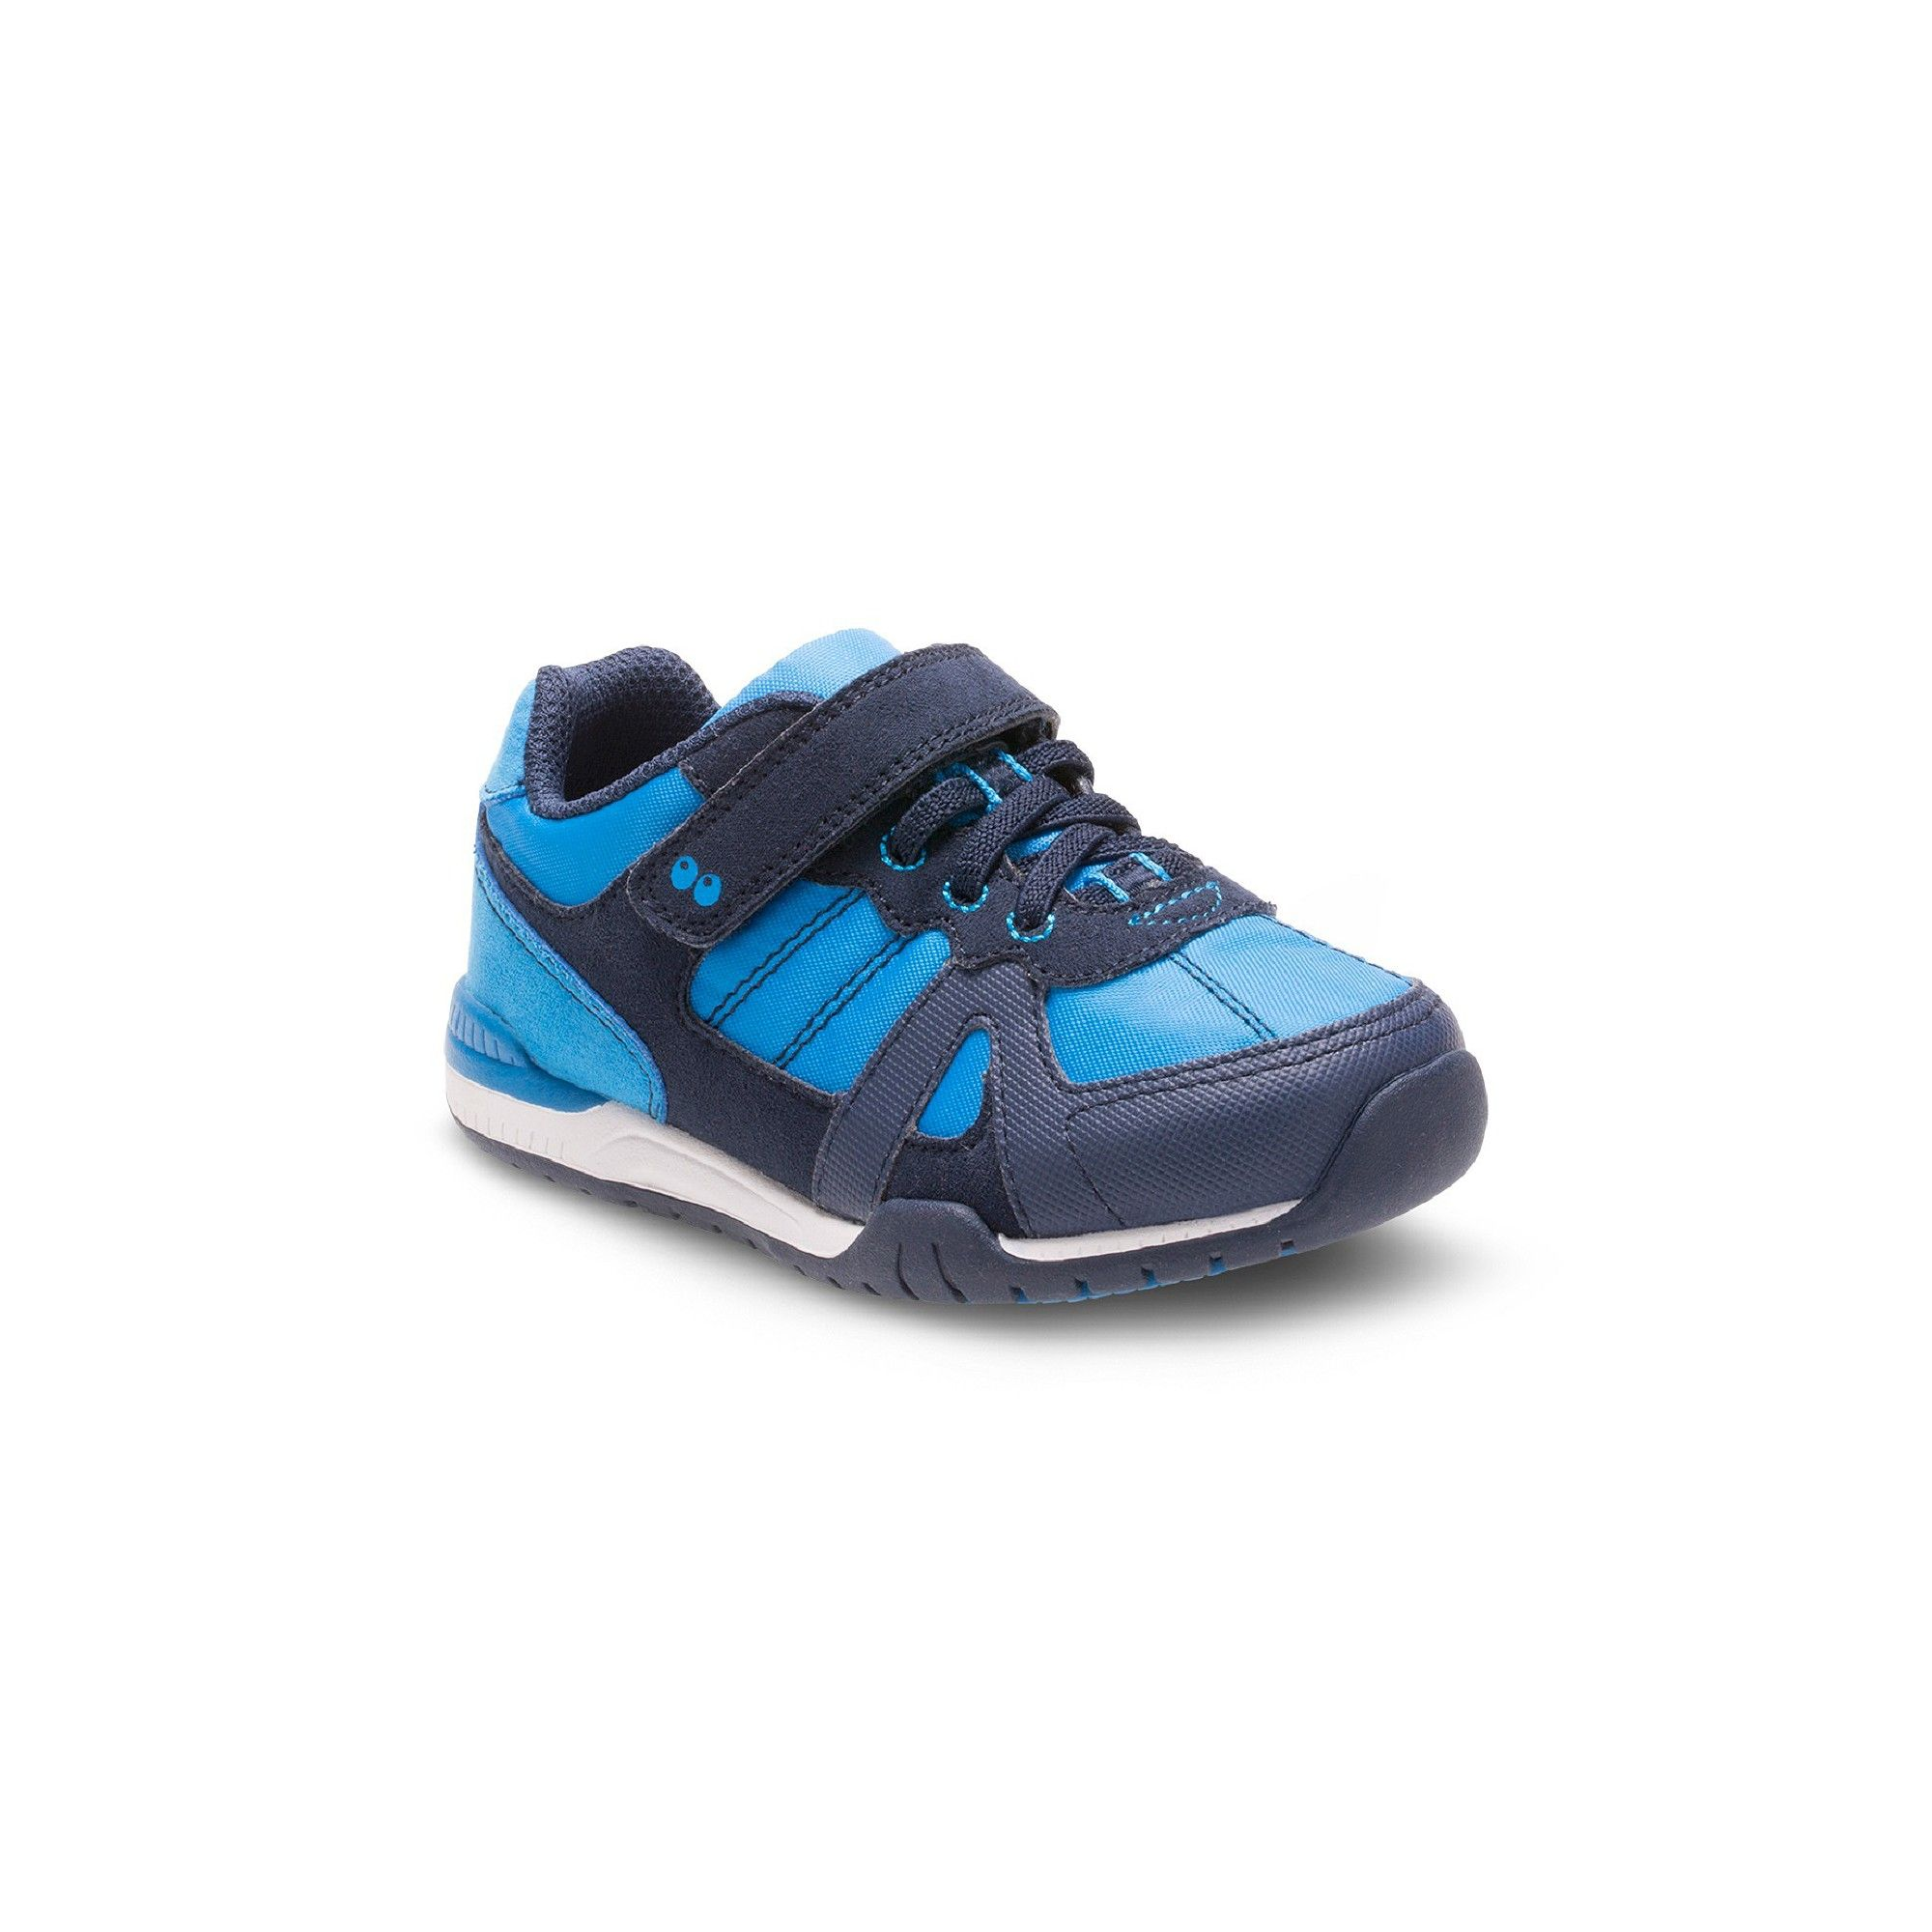 Toddler Boys Surprize by Stride Rite Deacon Sneakers Navy 10